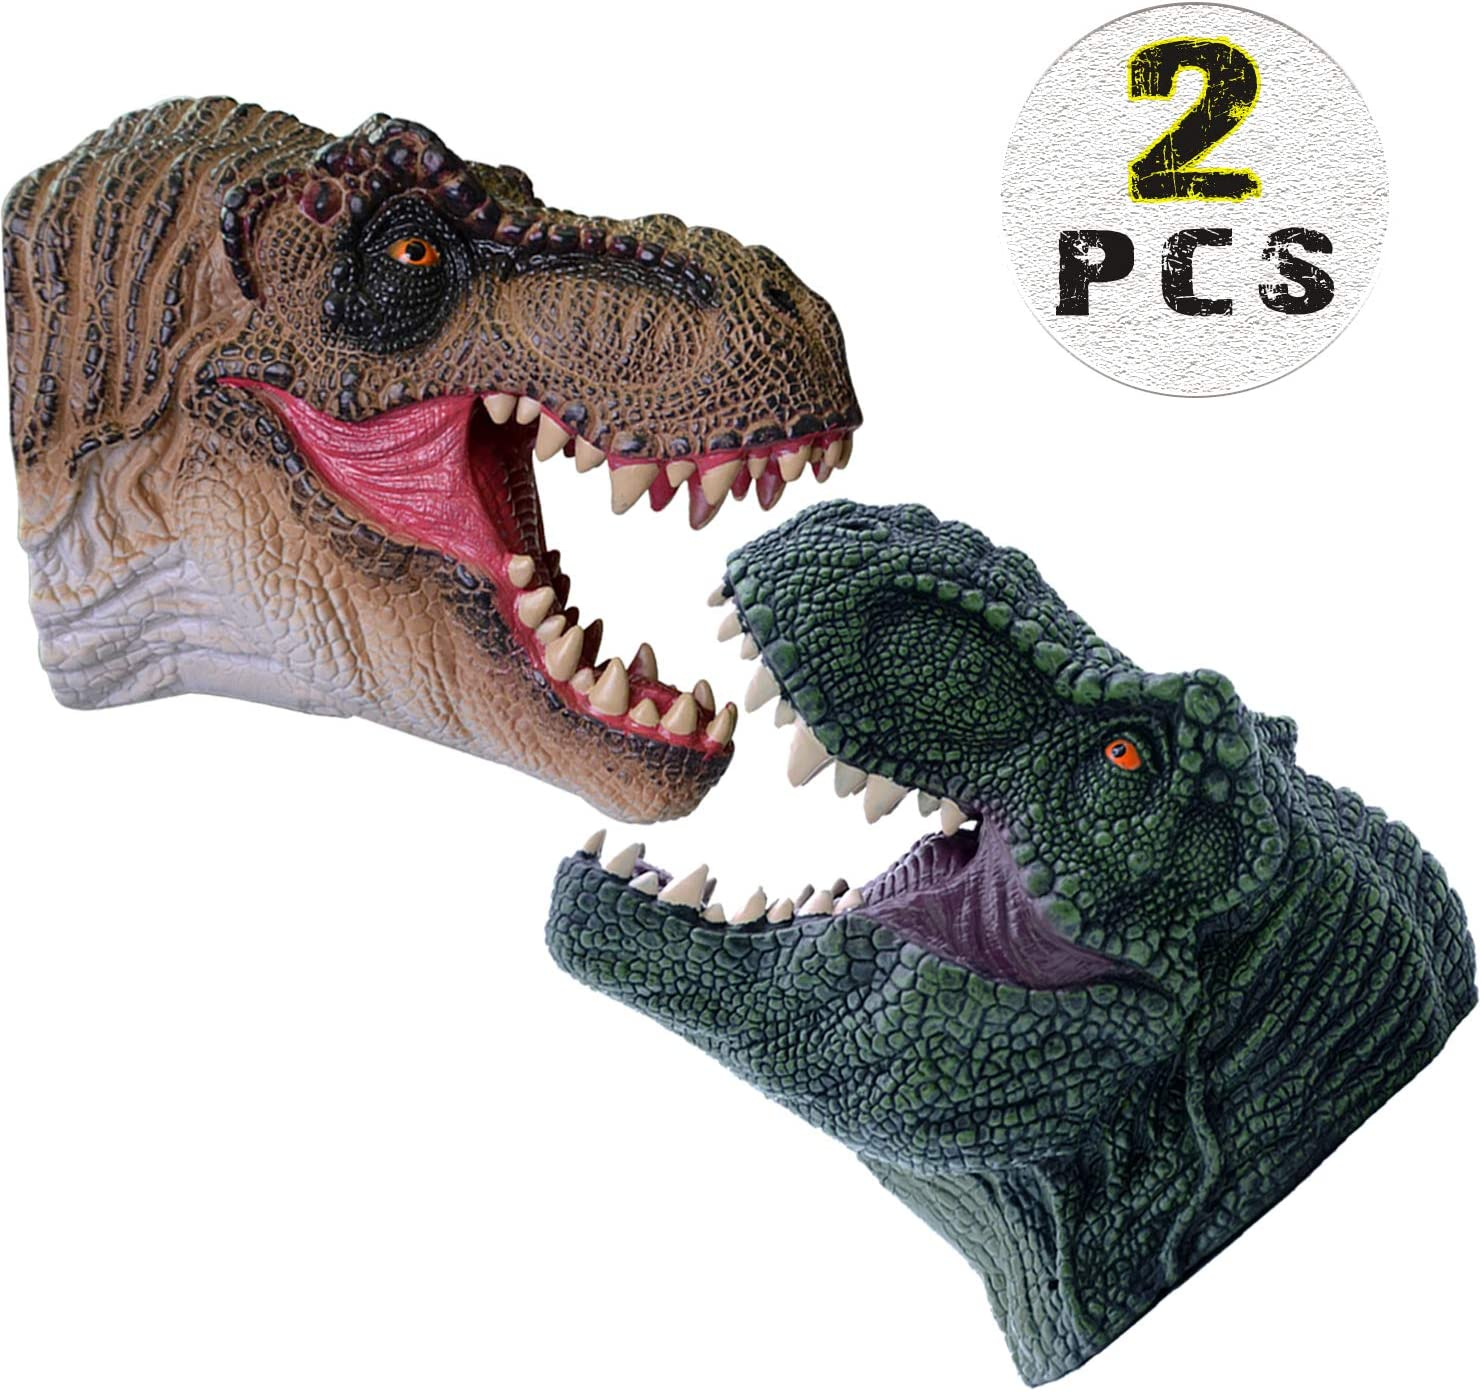 KELIWOW Dinosaur Hand Puppets Toy | Realistic Soft Rubber Tyrannosaurus Rex Puppets, Bath Toy & Beach Toy for Kids Boys Girls Aged 3 4 5 6 7 8 9 10+ (2 Pack)